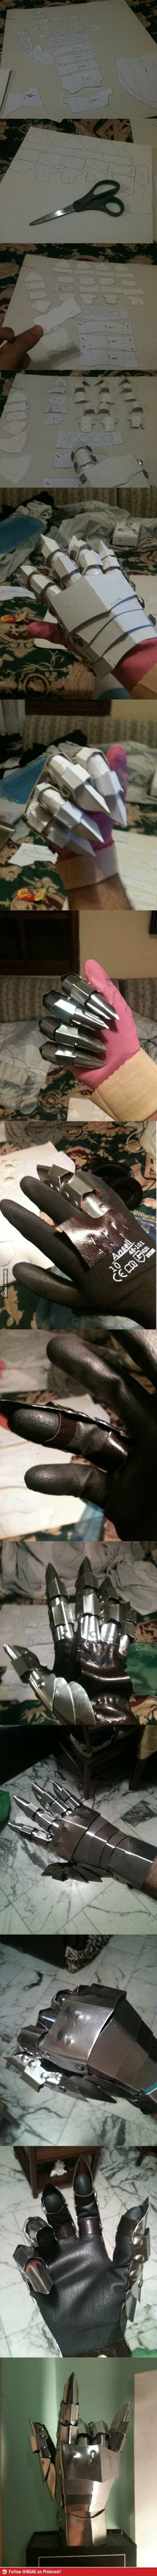 Step by step picture guide of how to make a hand-armor gauntlet from stiff paper or cardboard.